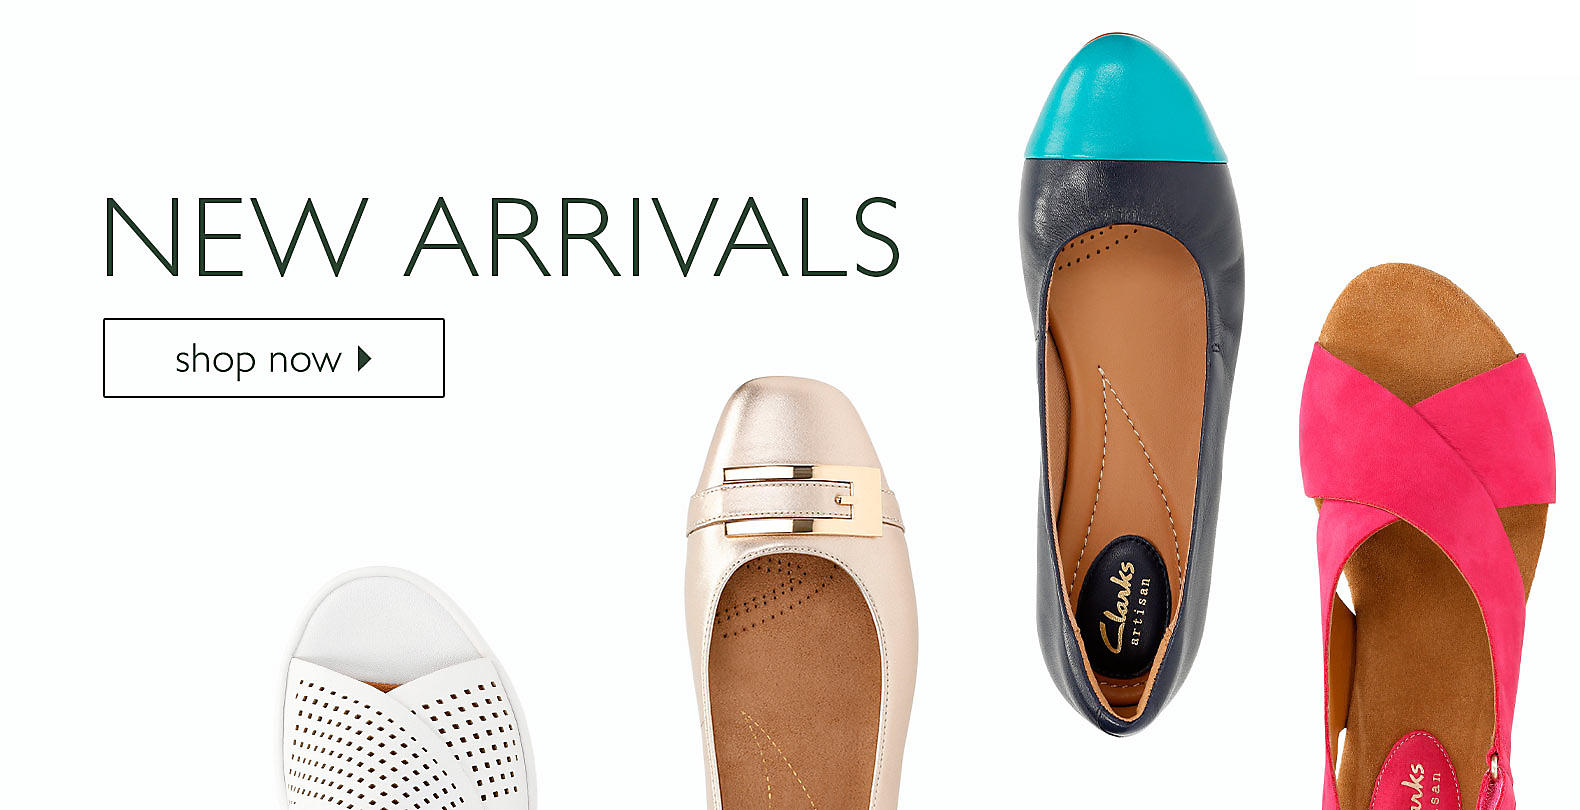 Shop Clarks Women's New Arrivals